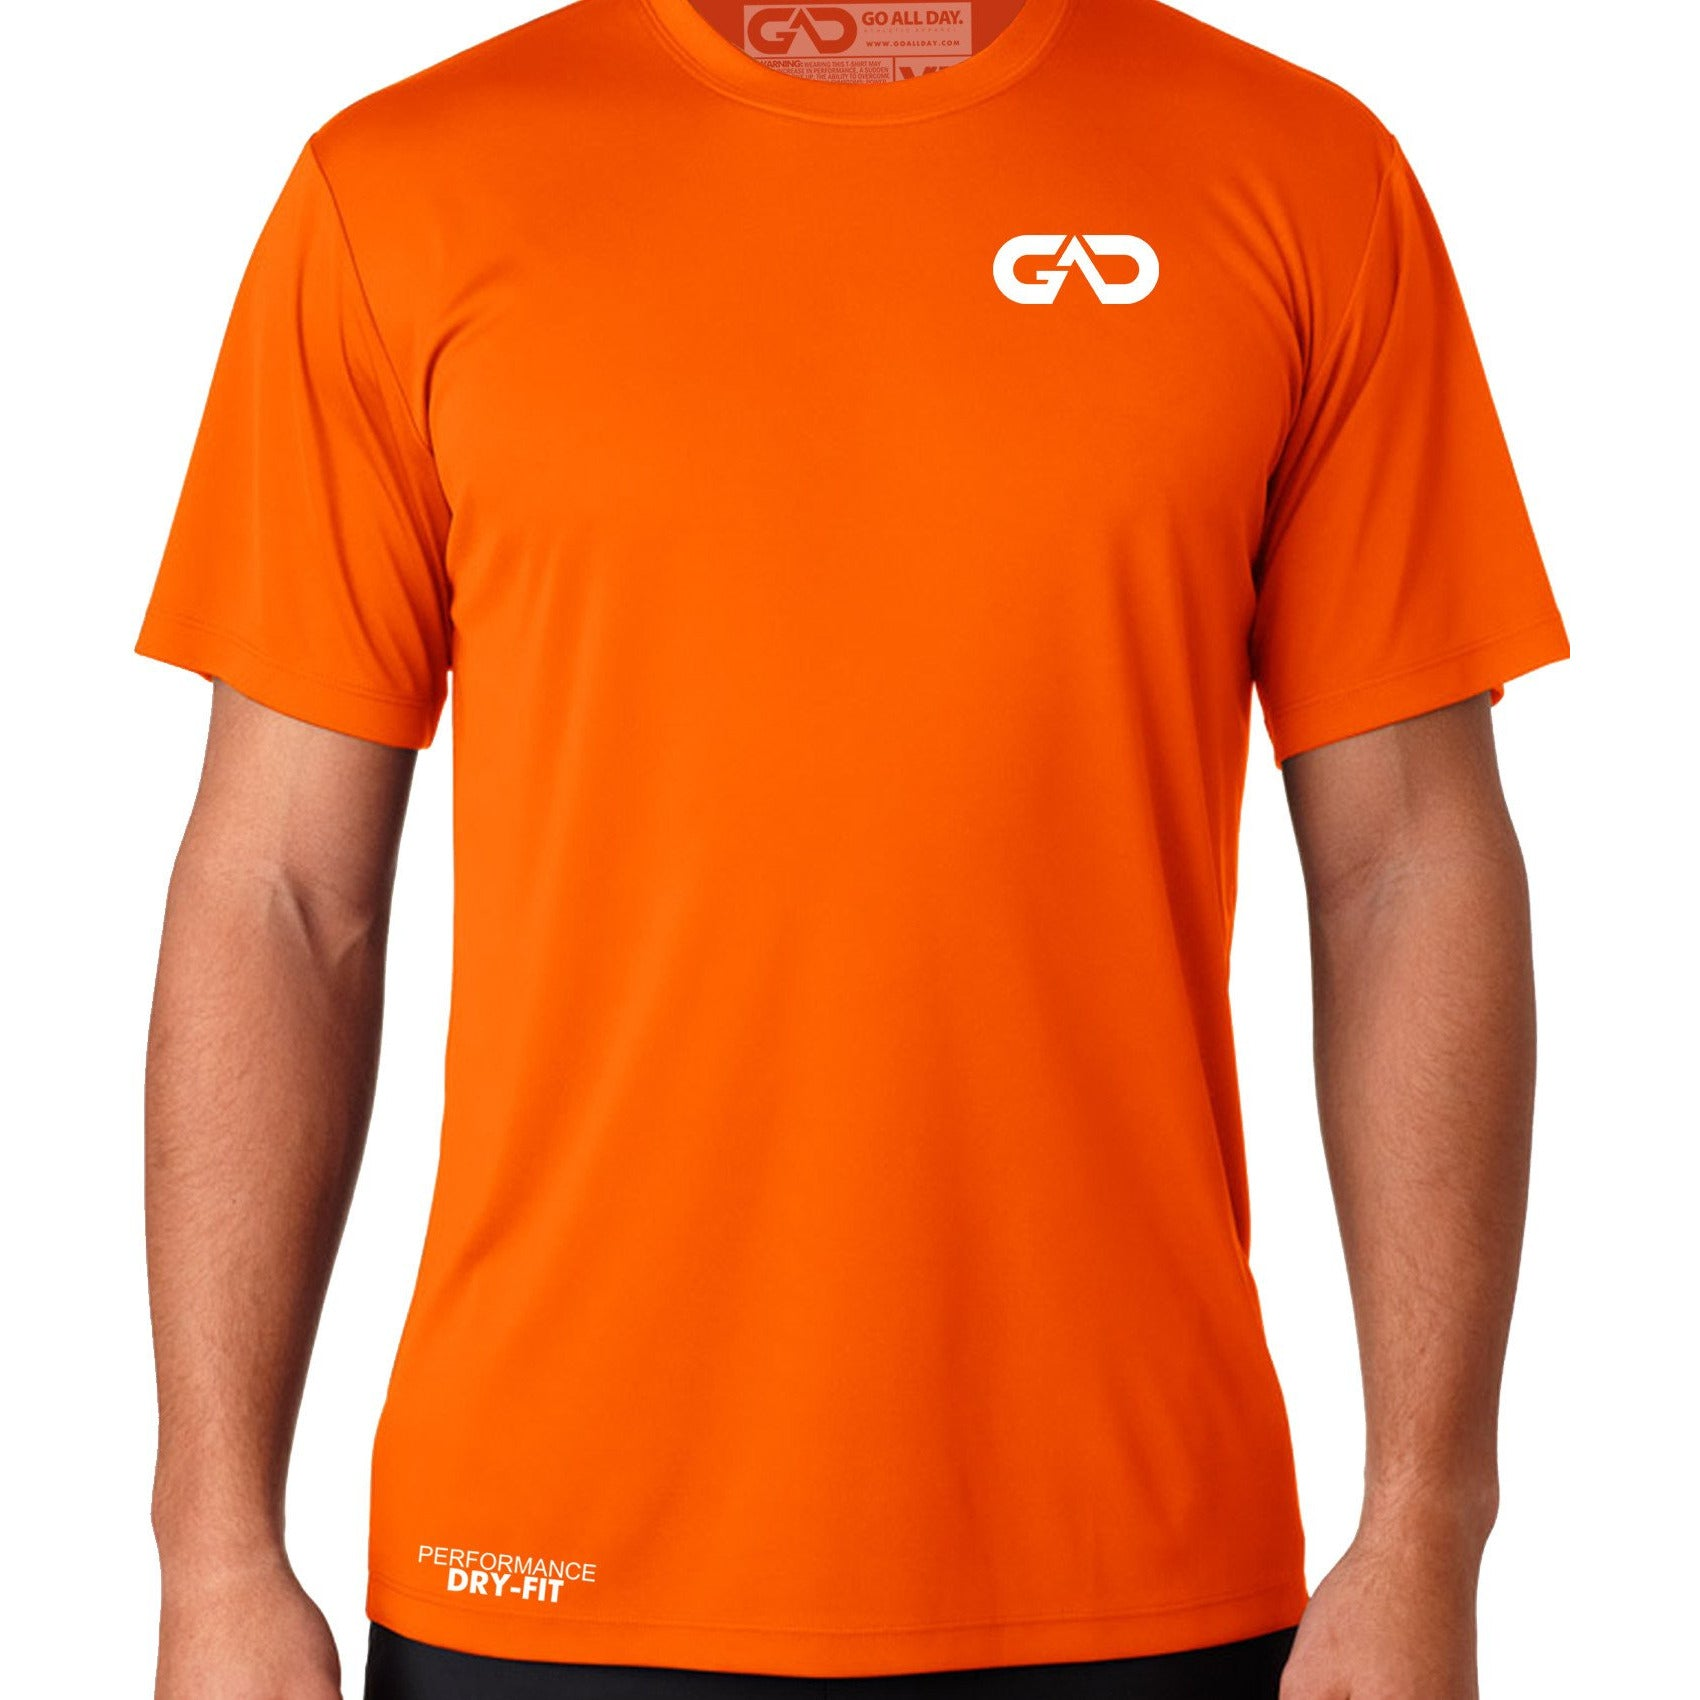 4ae1a9083 DRY-FIT Mens Tee (Neon Orange) Performance - GO ALL DAY ...